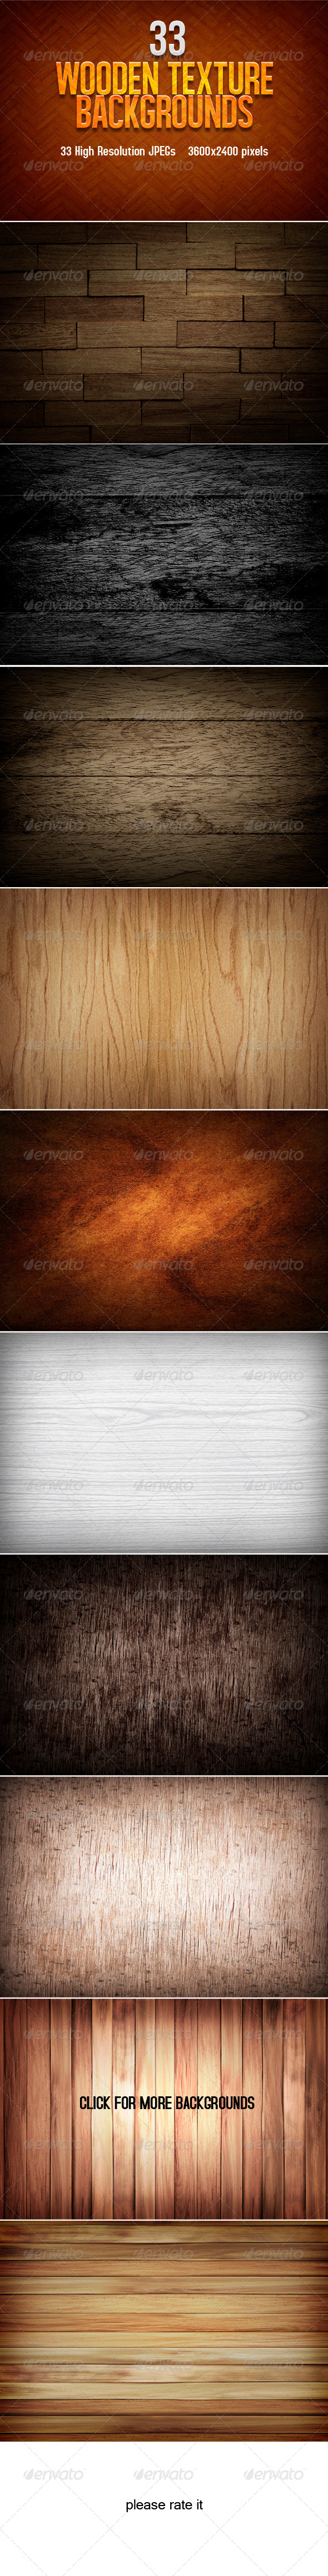 Wooden Texture Backgrounds